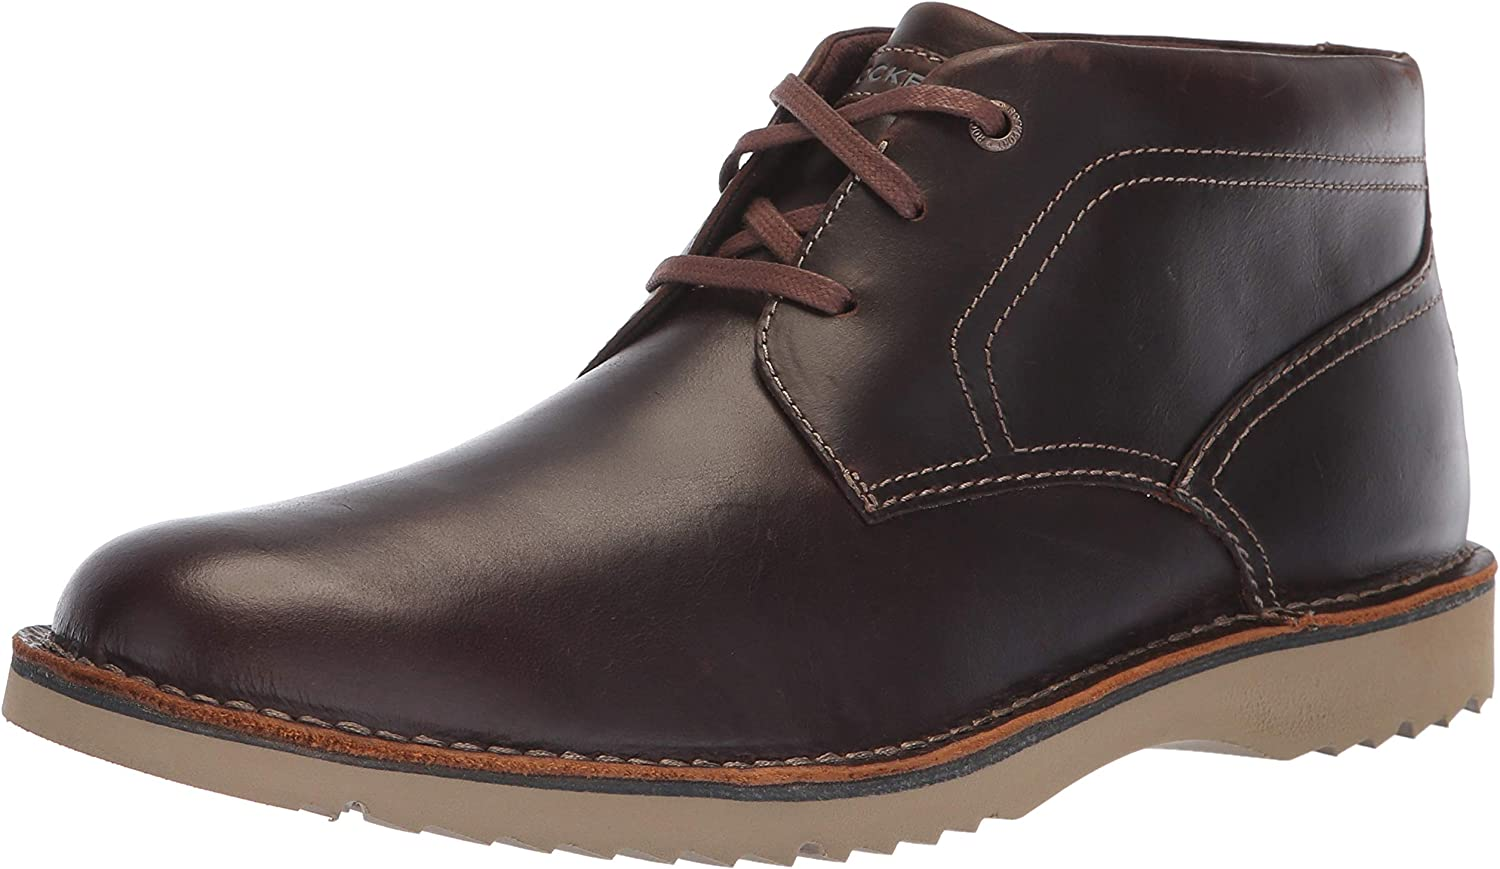 Rockport Men's OFFicial shop Super Special SALE held Cabot Boot Chukka